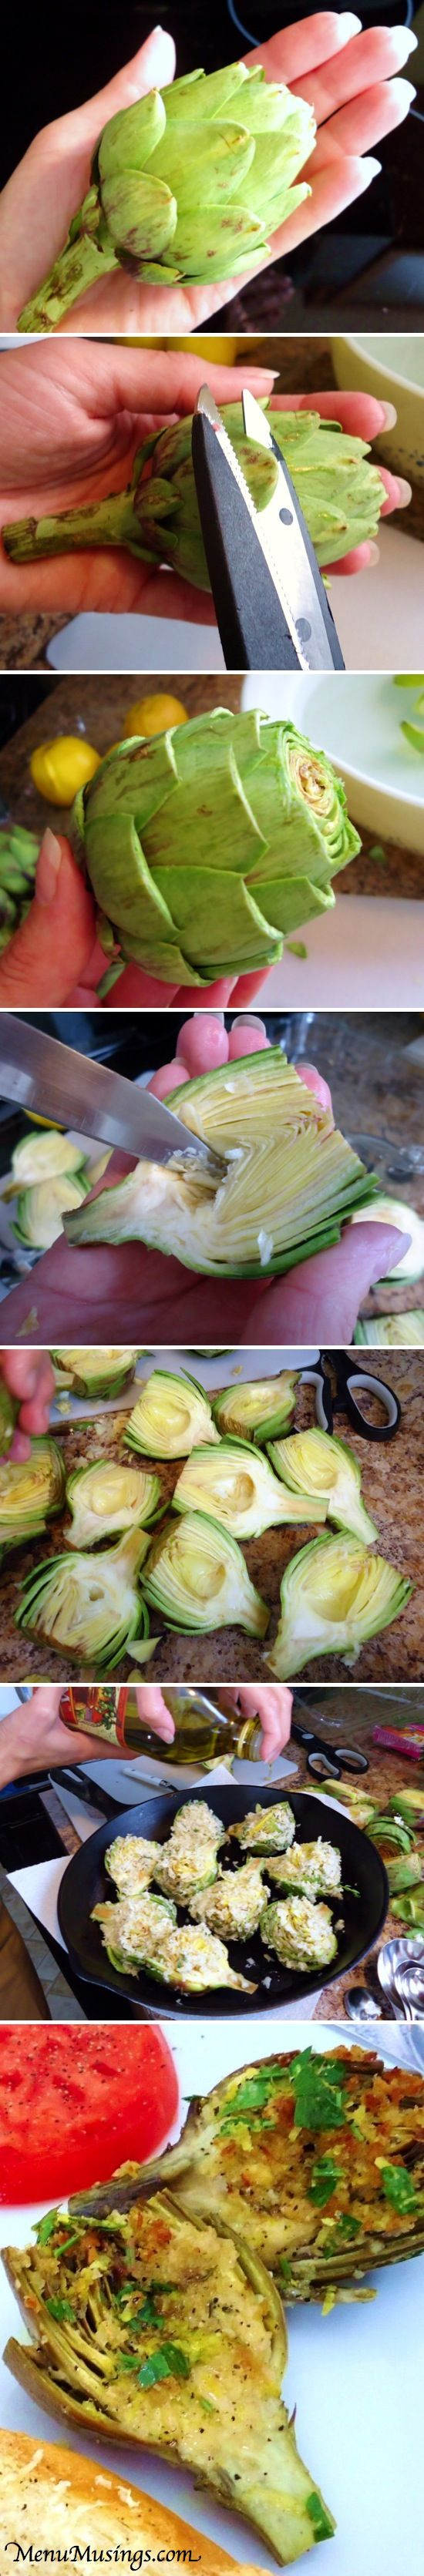 Stuffed Baby Artichokes | Recipe By Photo